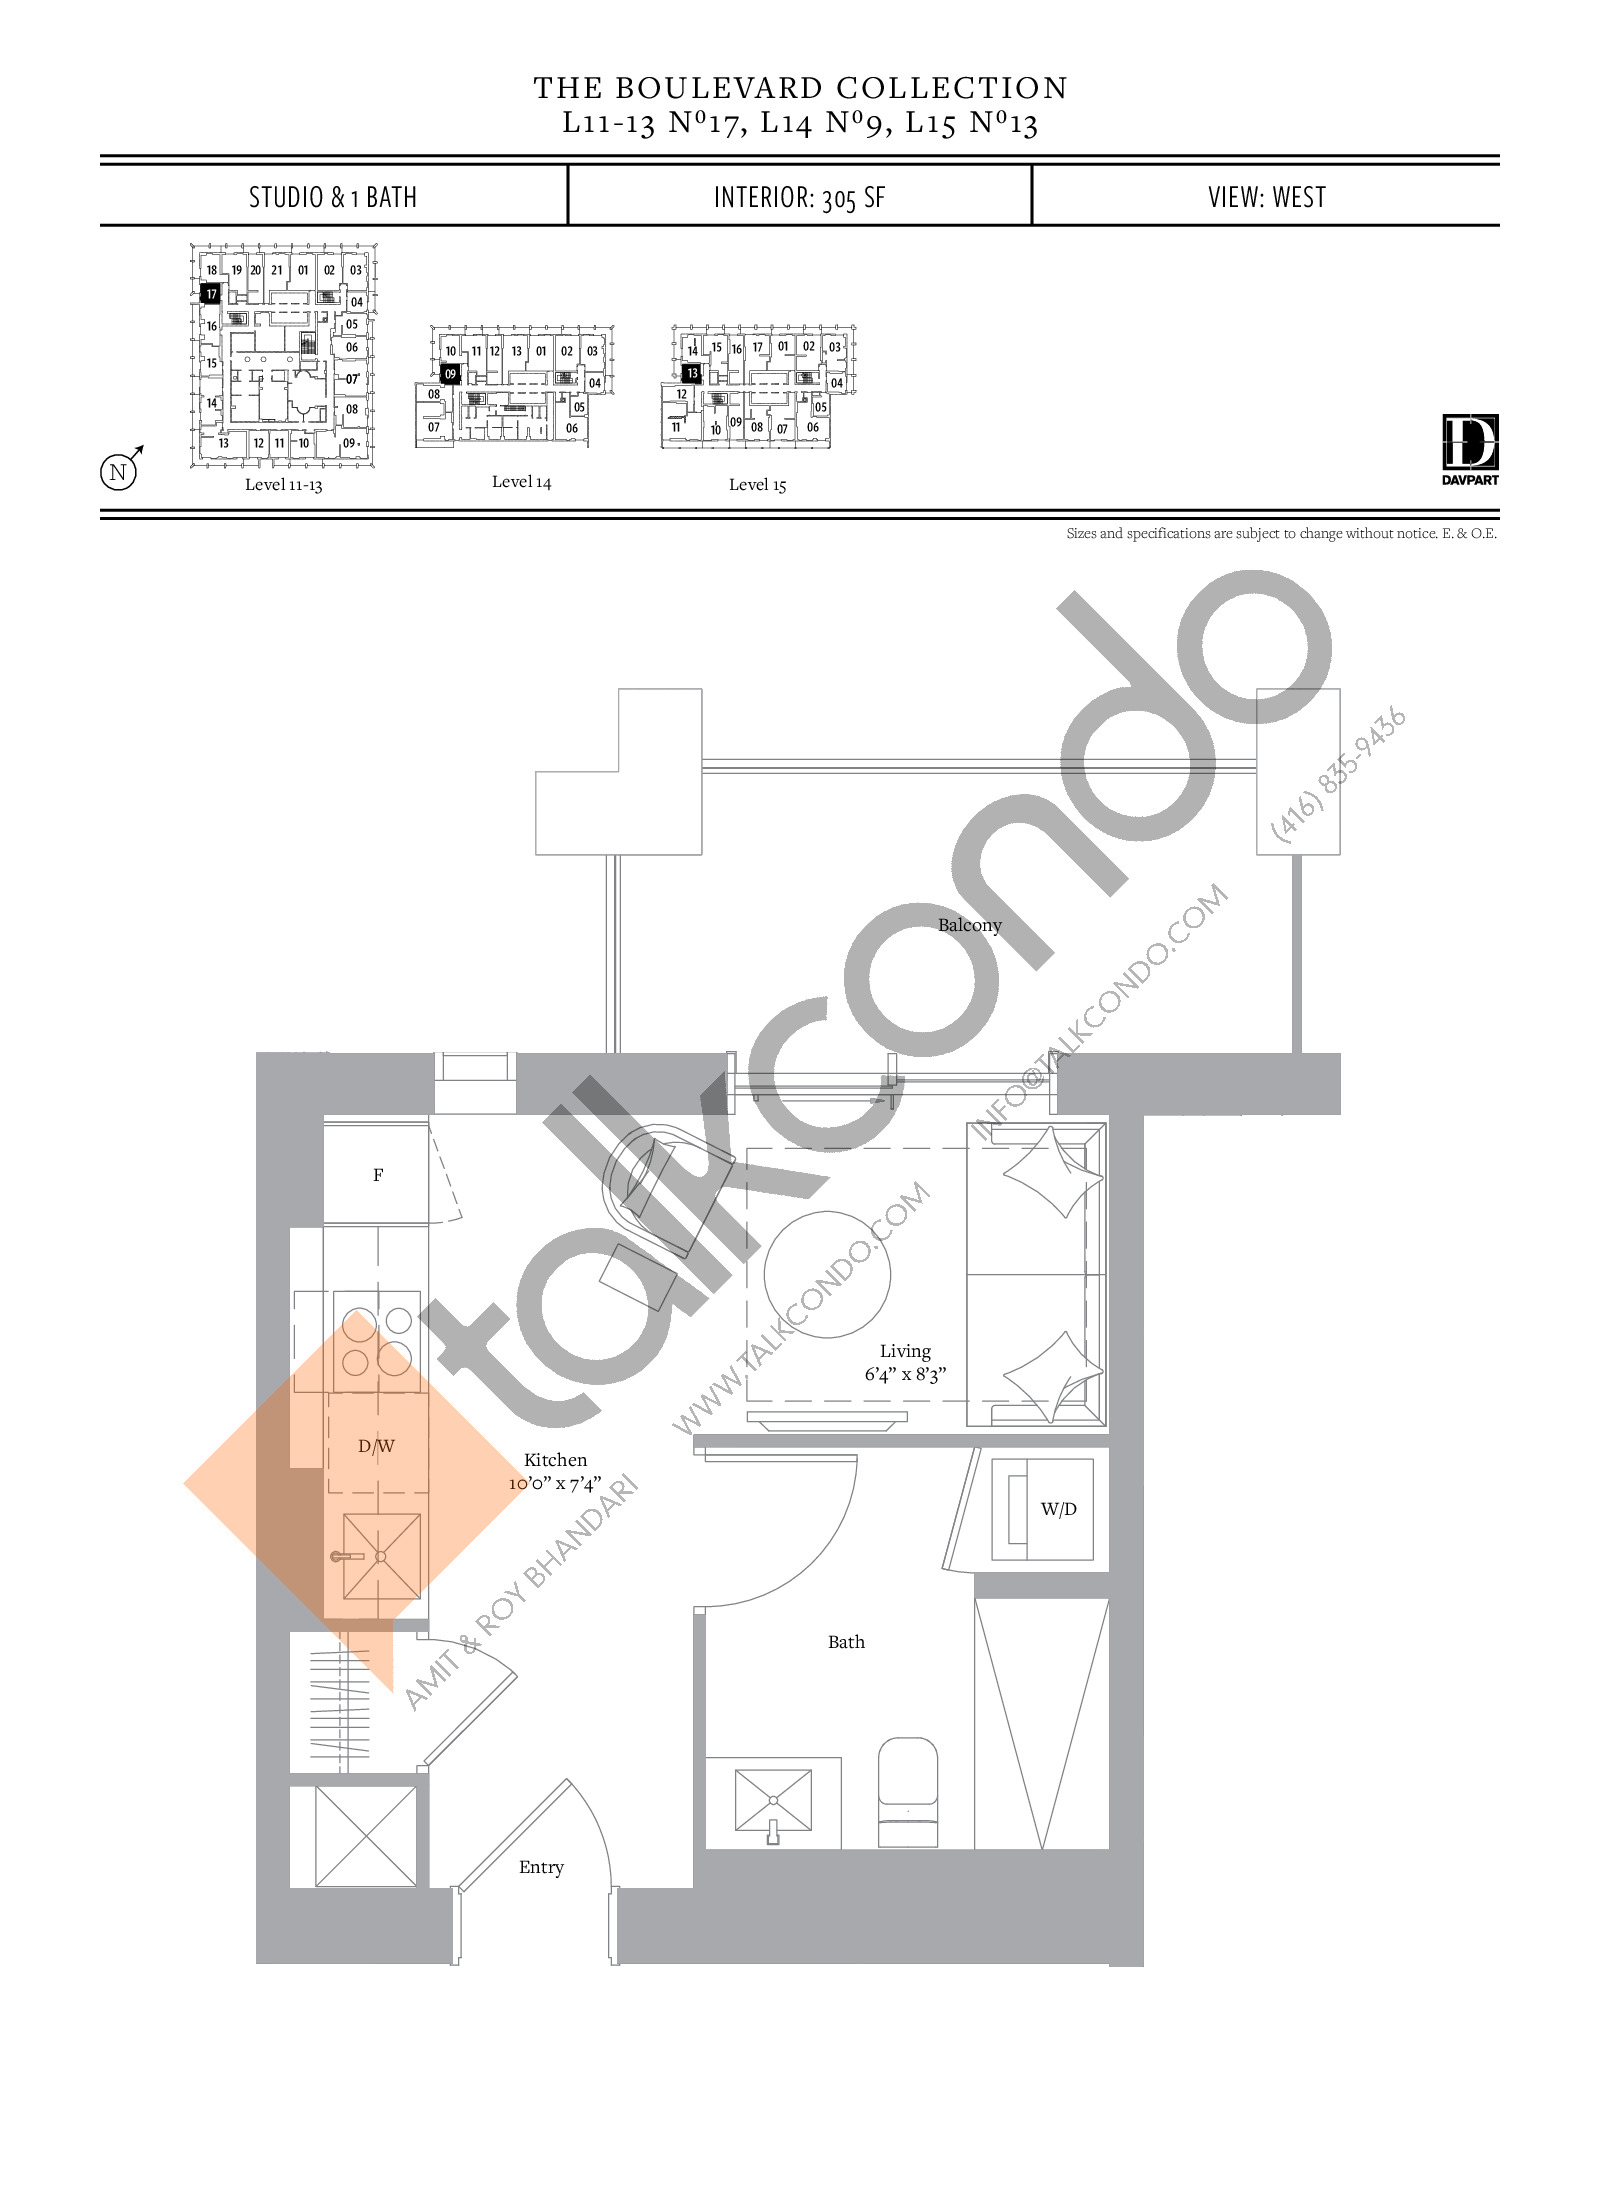 No 17, 9, 13 - The Boulevard Collection Floor Plan at The United Bldg. Condos - 305 sq.ft